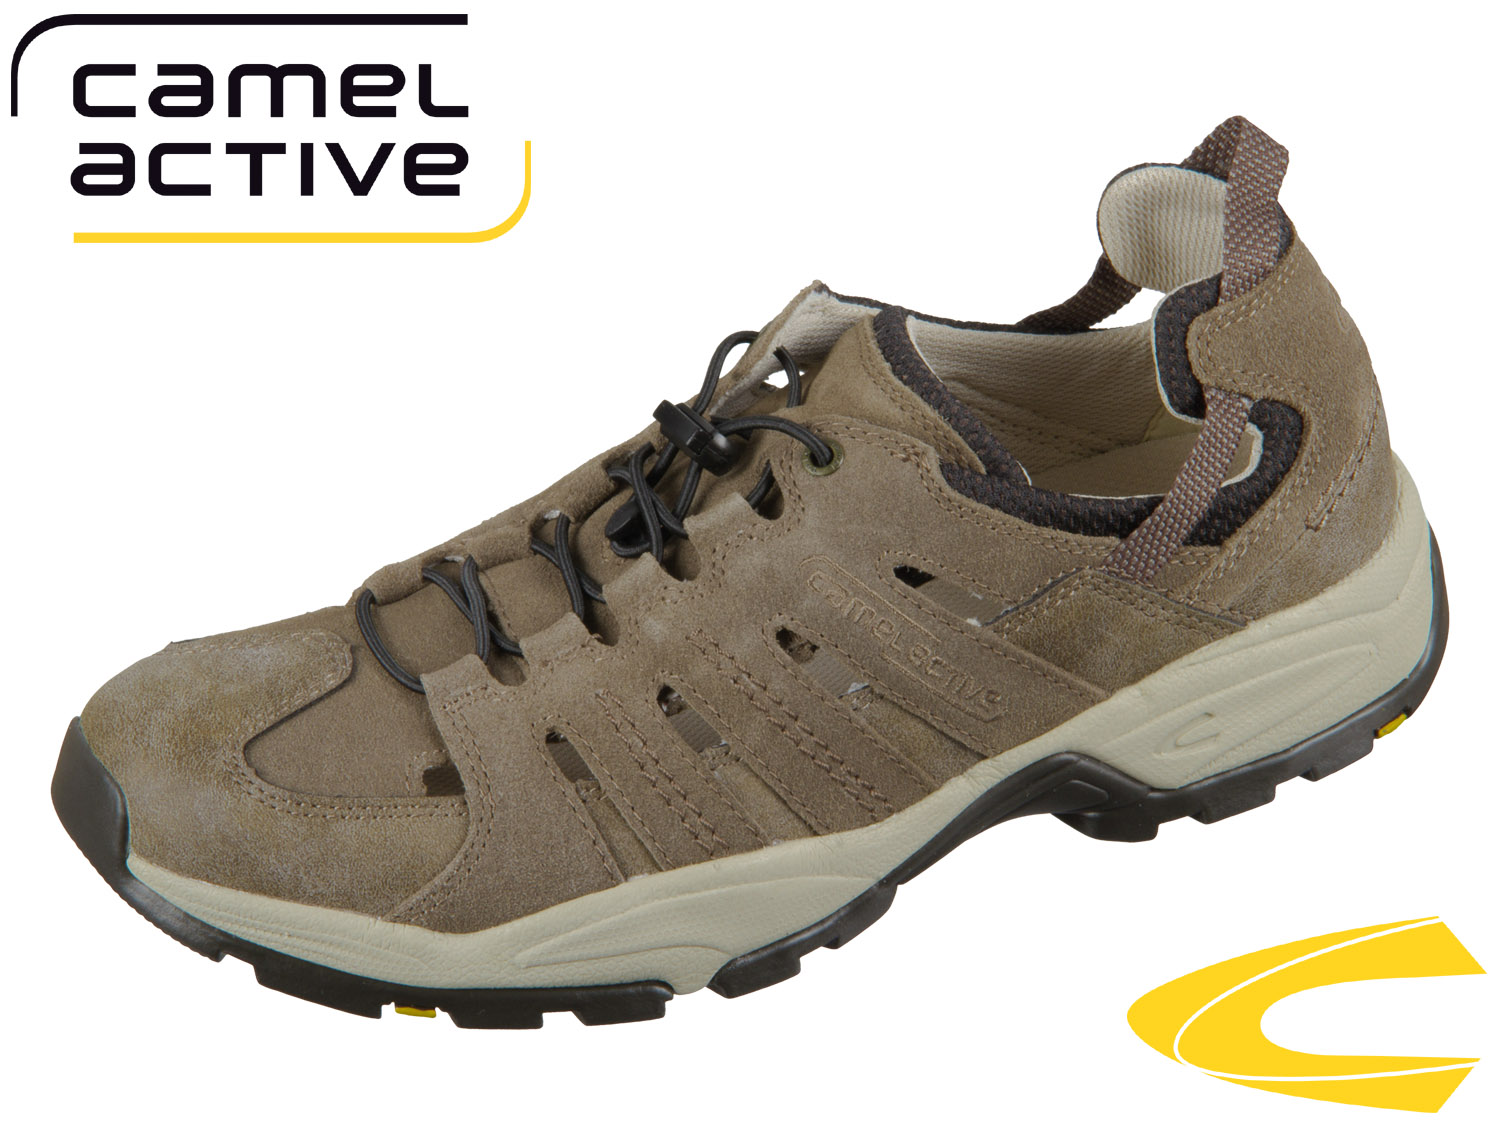 camel active Evolution 138.21 14 brown taupe intage PU Suede